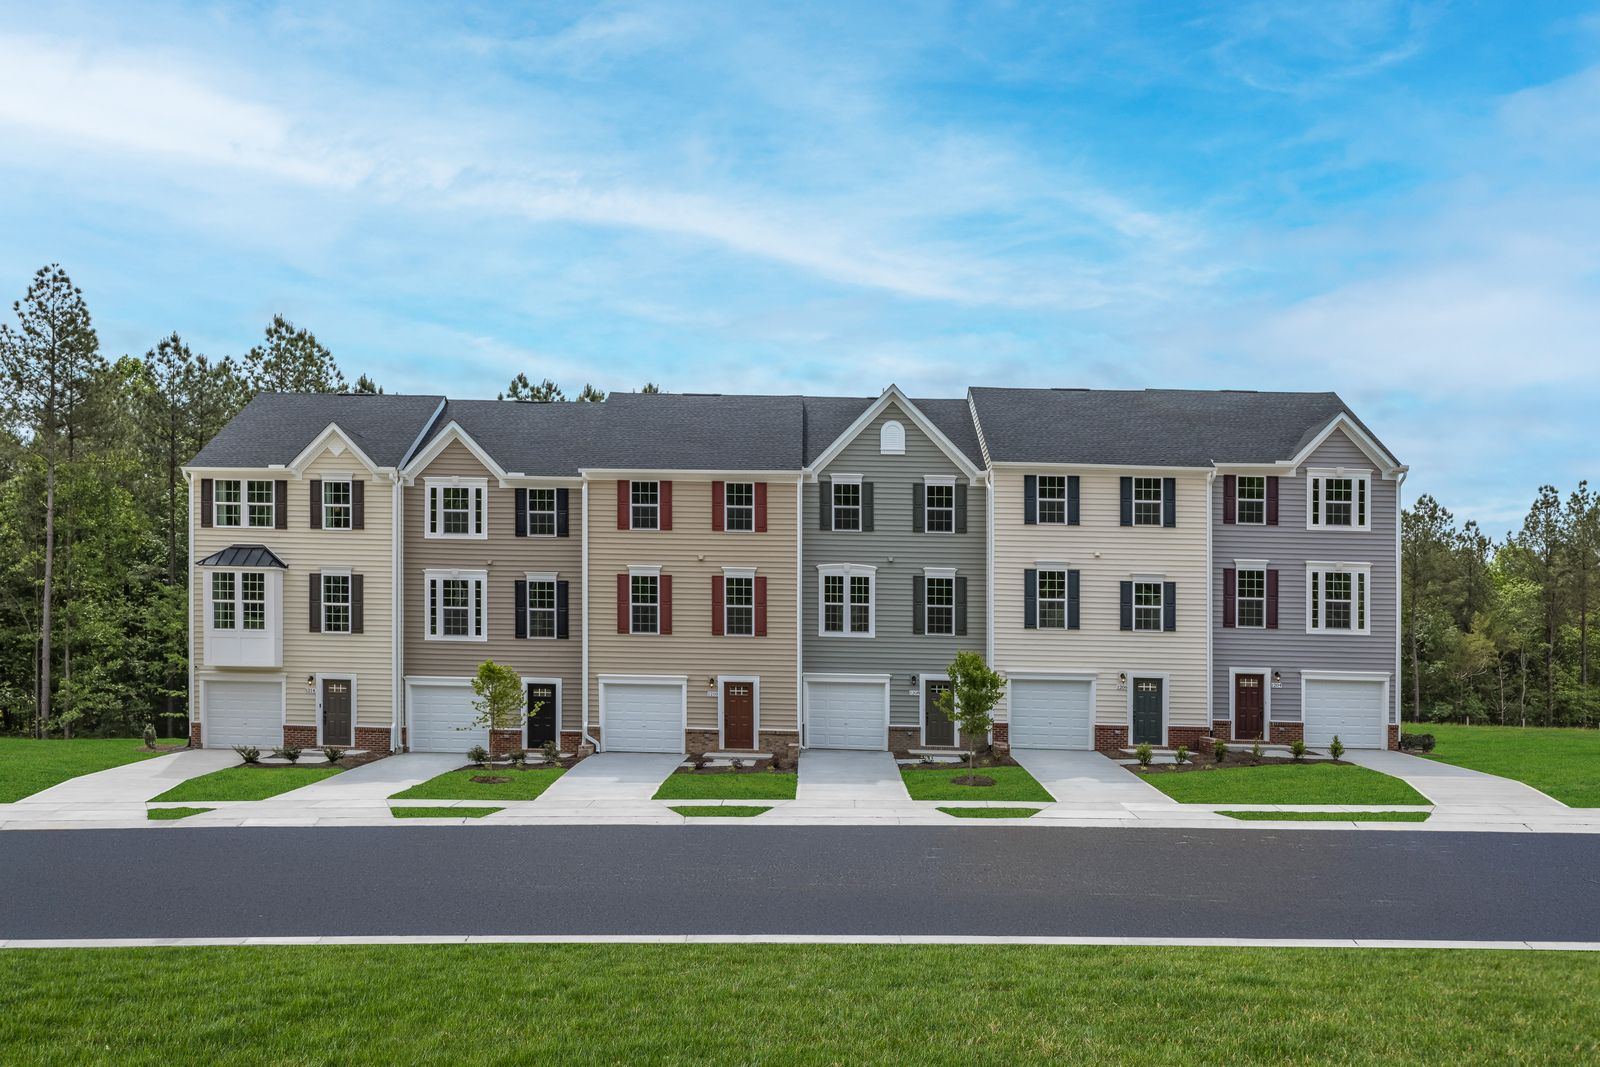 Garage townhomes with wooded homesites close to Duke, RTP & UNC.:Schedule a visit to tour the model home & get details on how you can own. No bidding or waitlist!